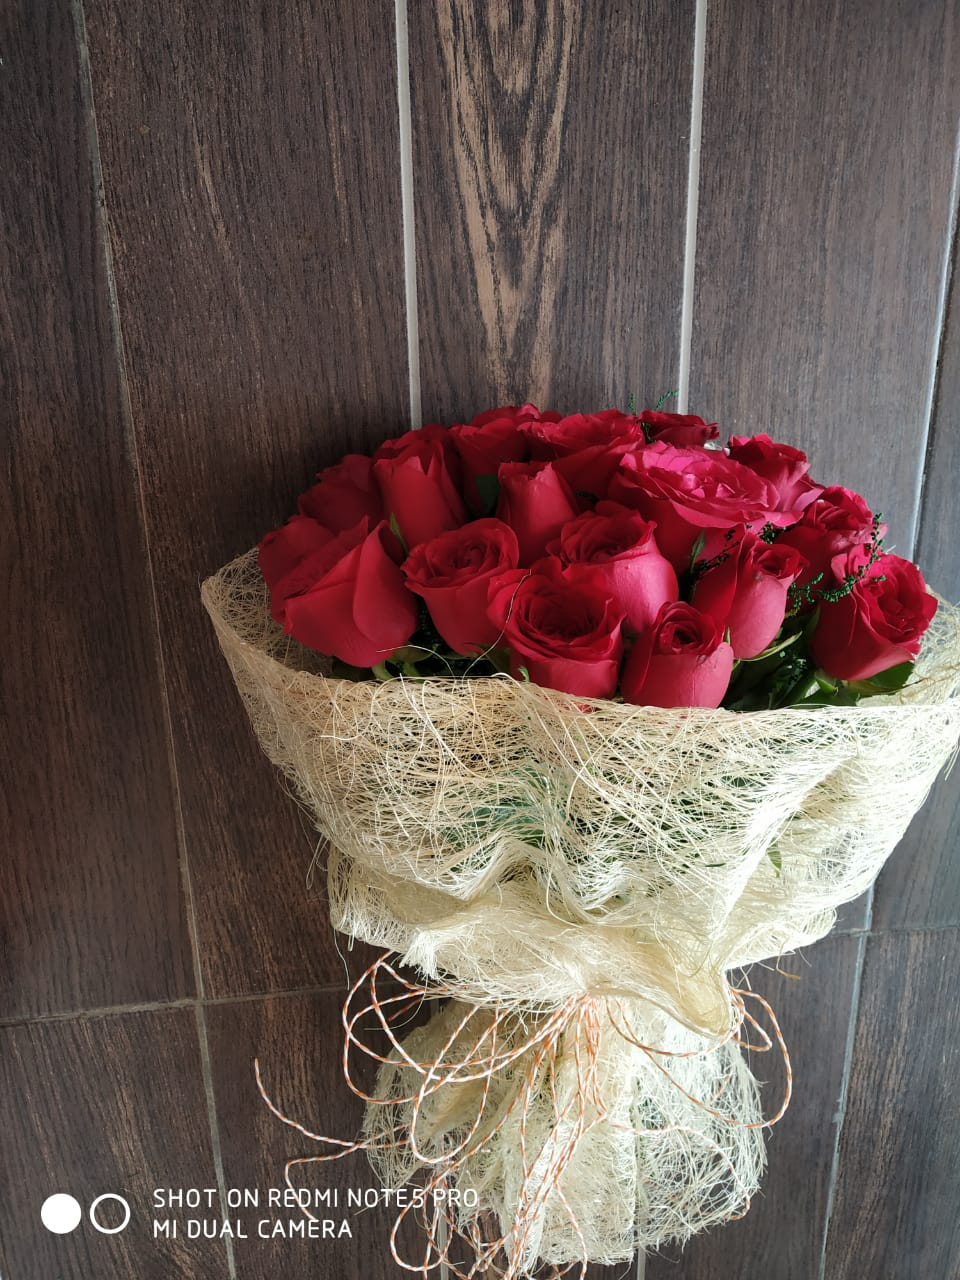 send flower Alaknanda DelhiRed Roses in Jute